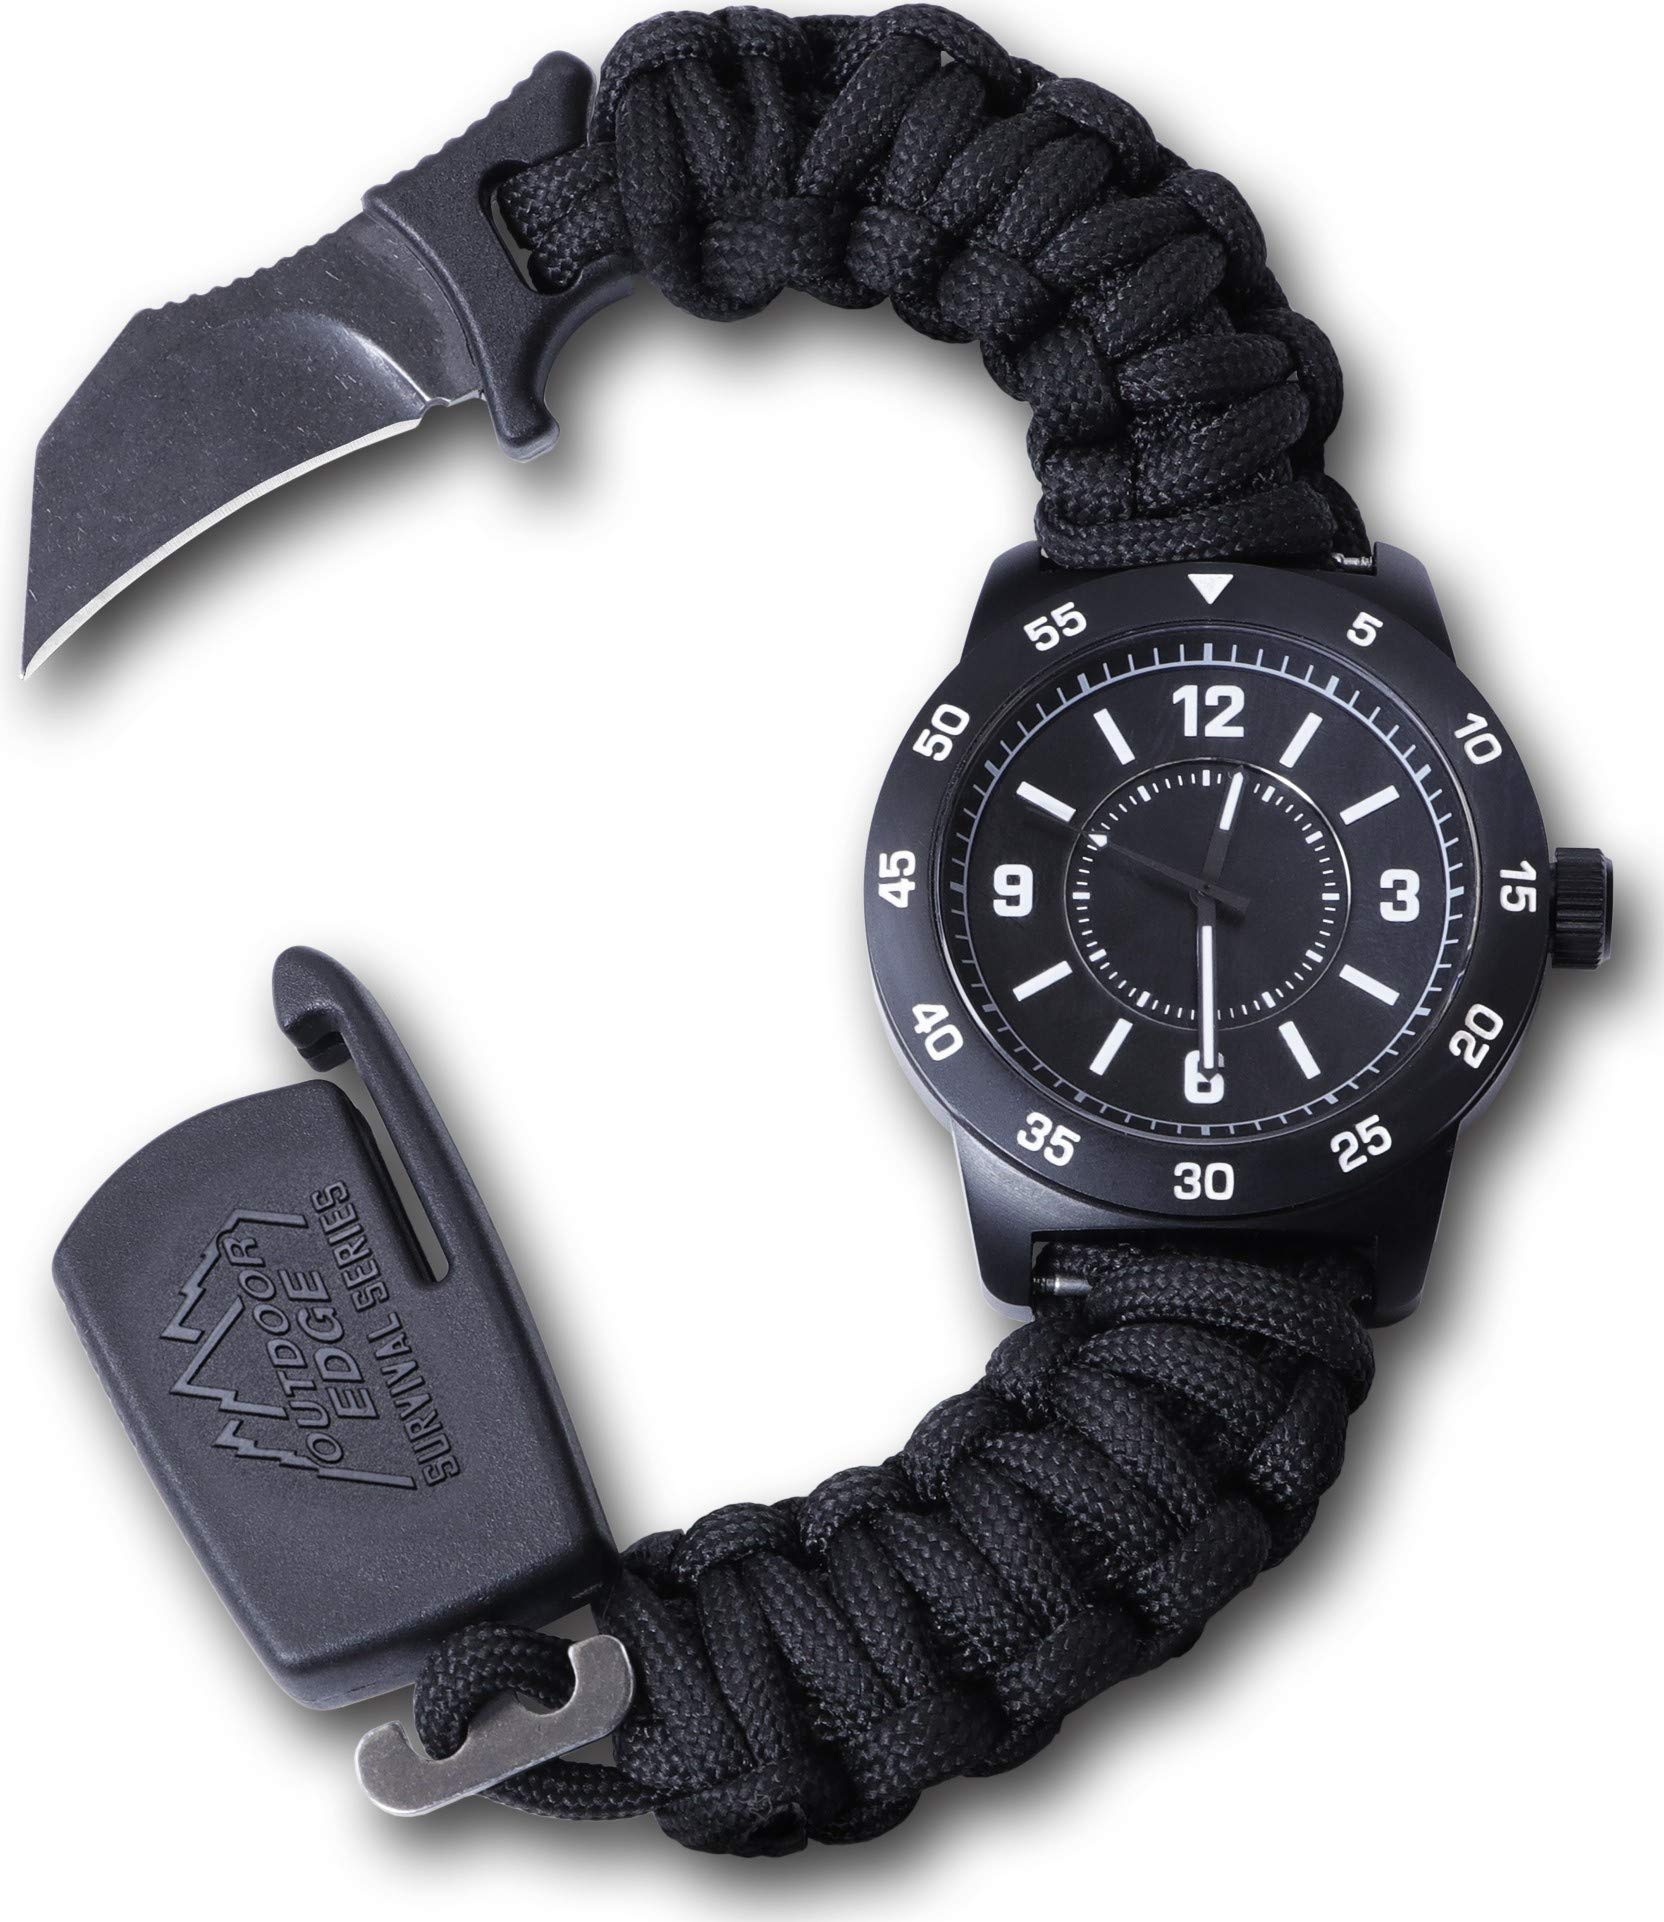 Outdoor Edge OEPW80Z-BRK Paraclaw CQD Watch Medium by Outdoor Edge